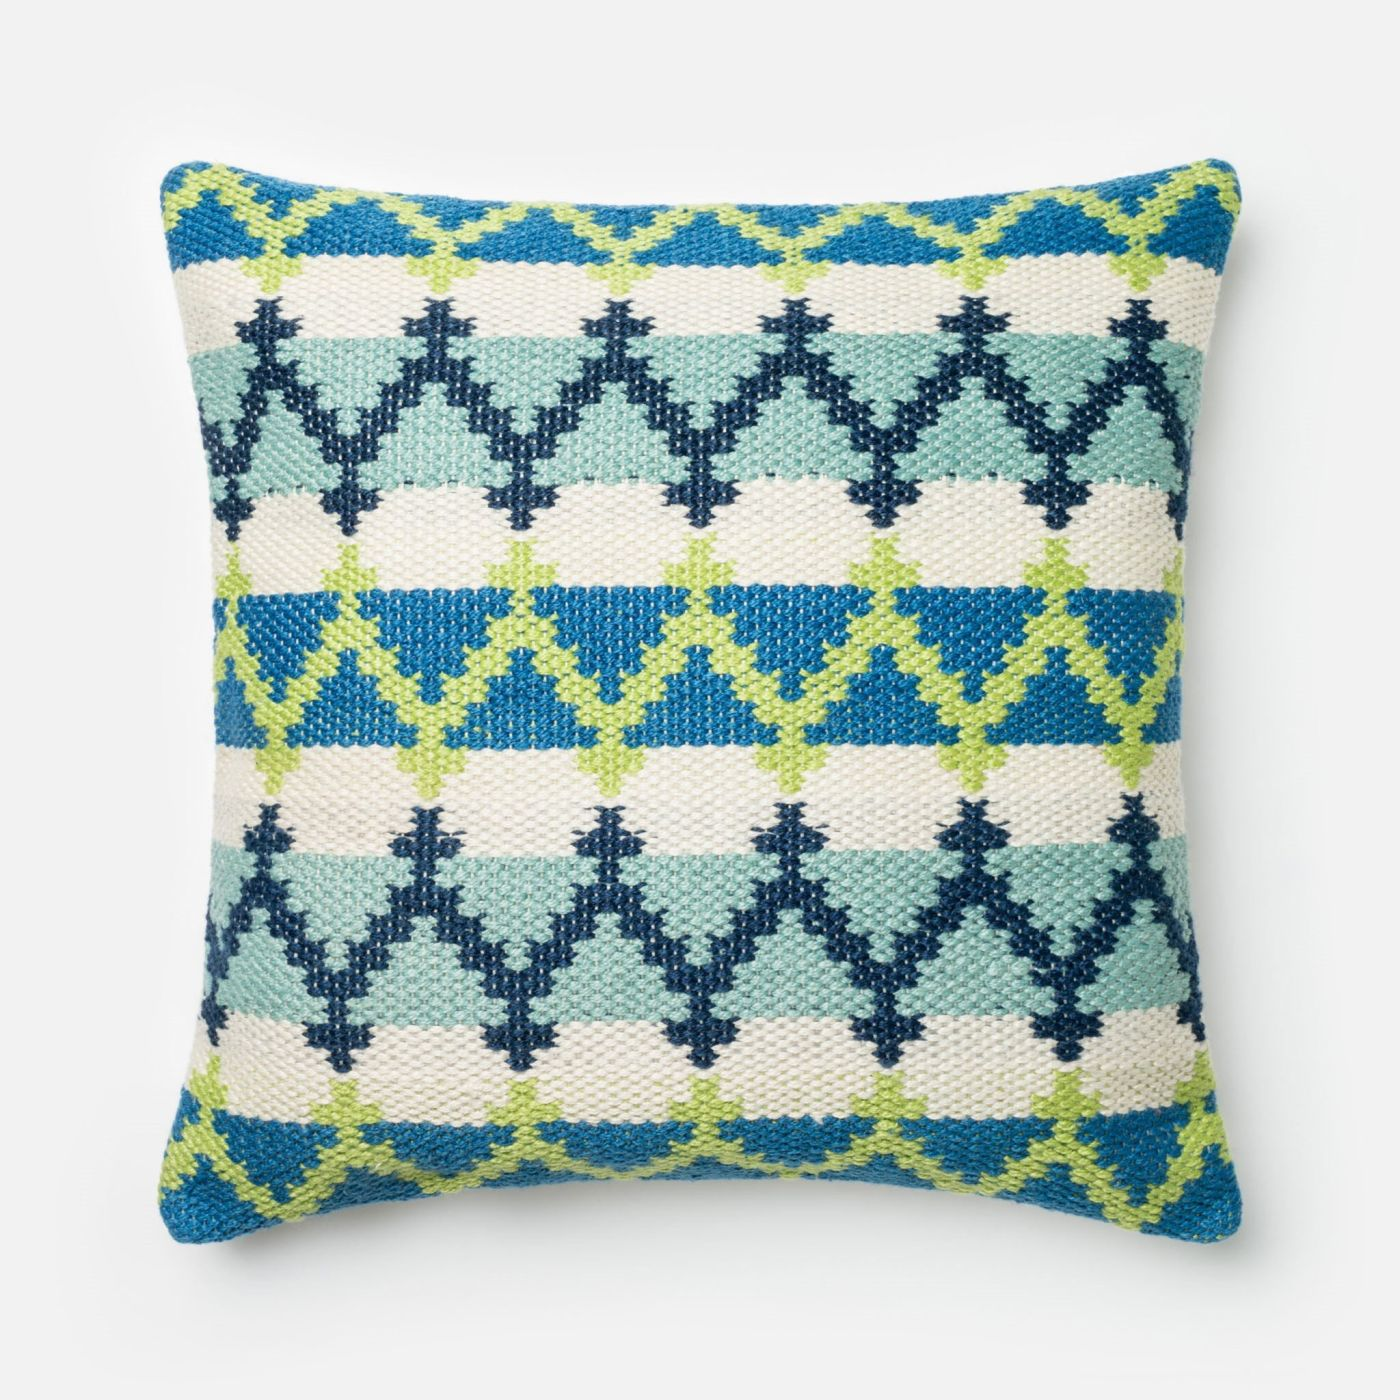 Loloi Rugs Loloi Blue / Green Decorative Throw Pillow (P0340) DSETP0340BBGRPIL3. Only $69.00 at ...